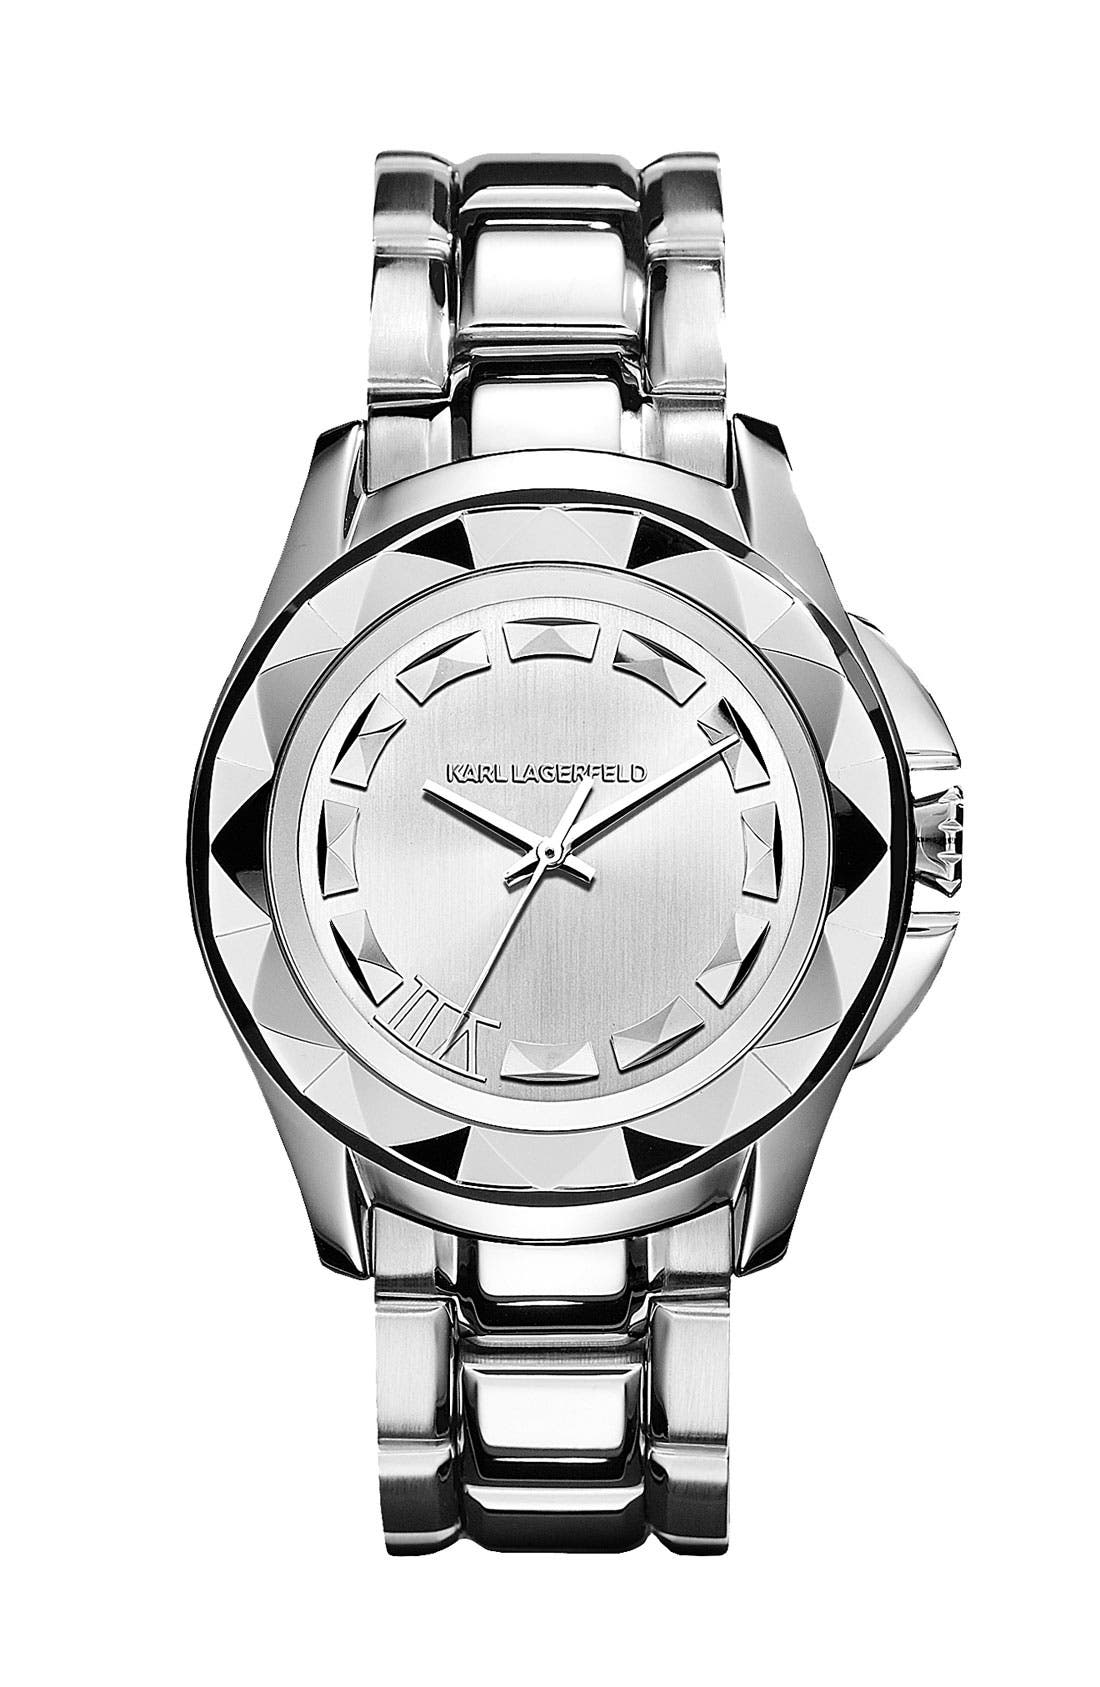 Main Image - KARL LAGERFELD '7' Faceted Bezel Bracelet Watch, 36mm